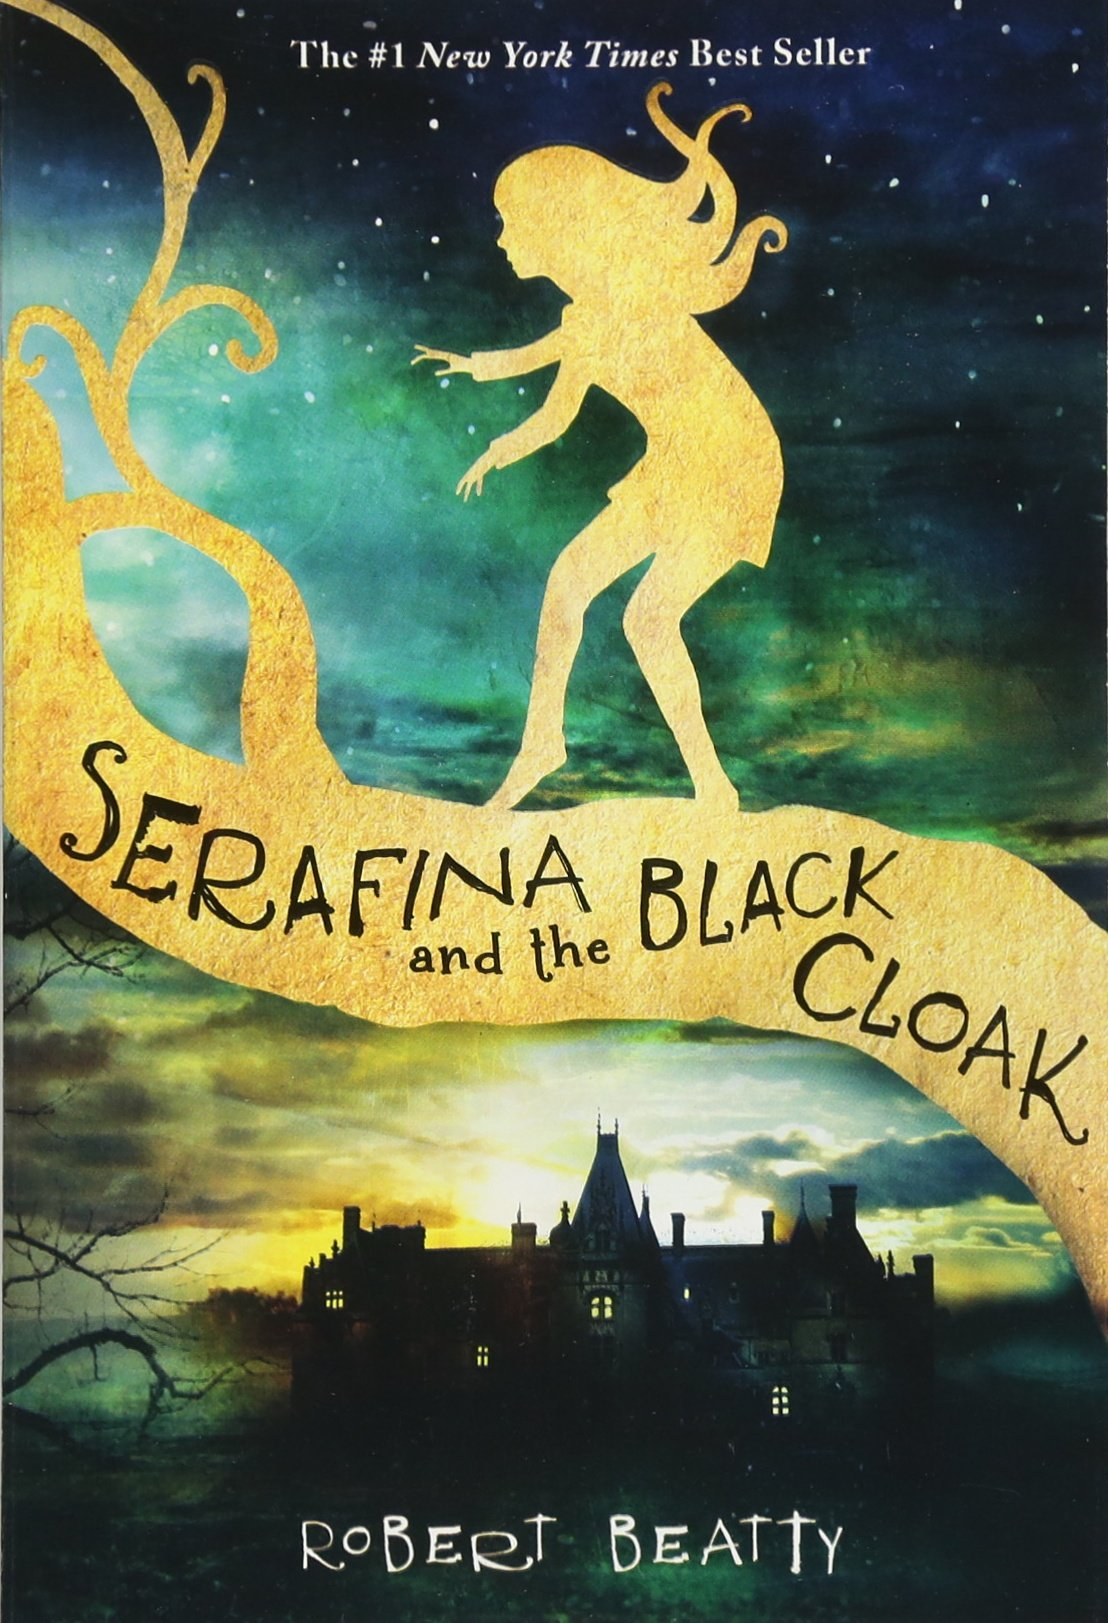 Serafina and the Black Cloak: Amazon.es: Robert Beatty: Libros en idiomas extranjeros